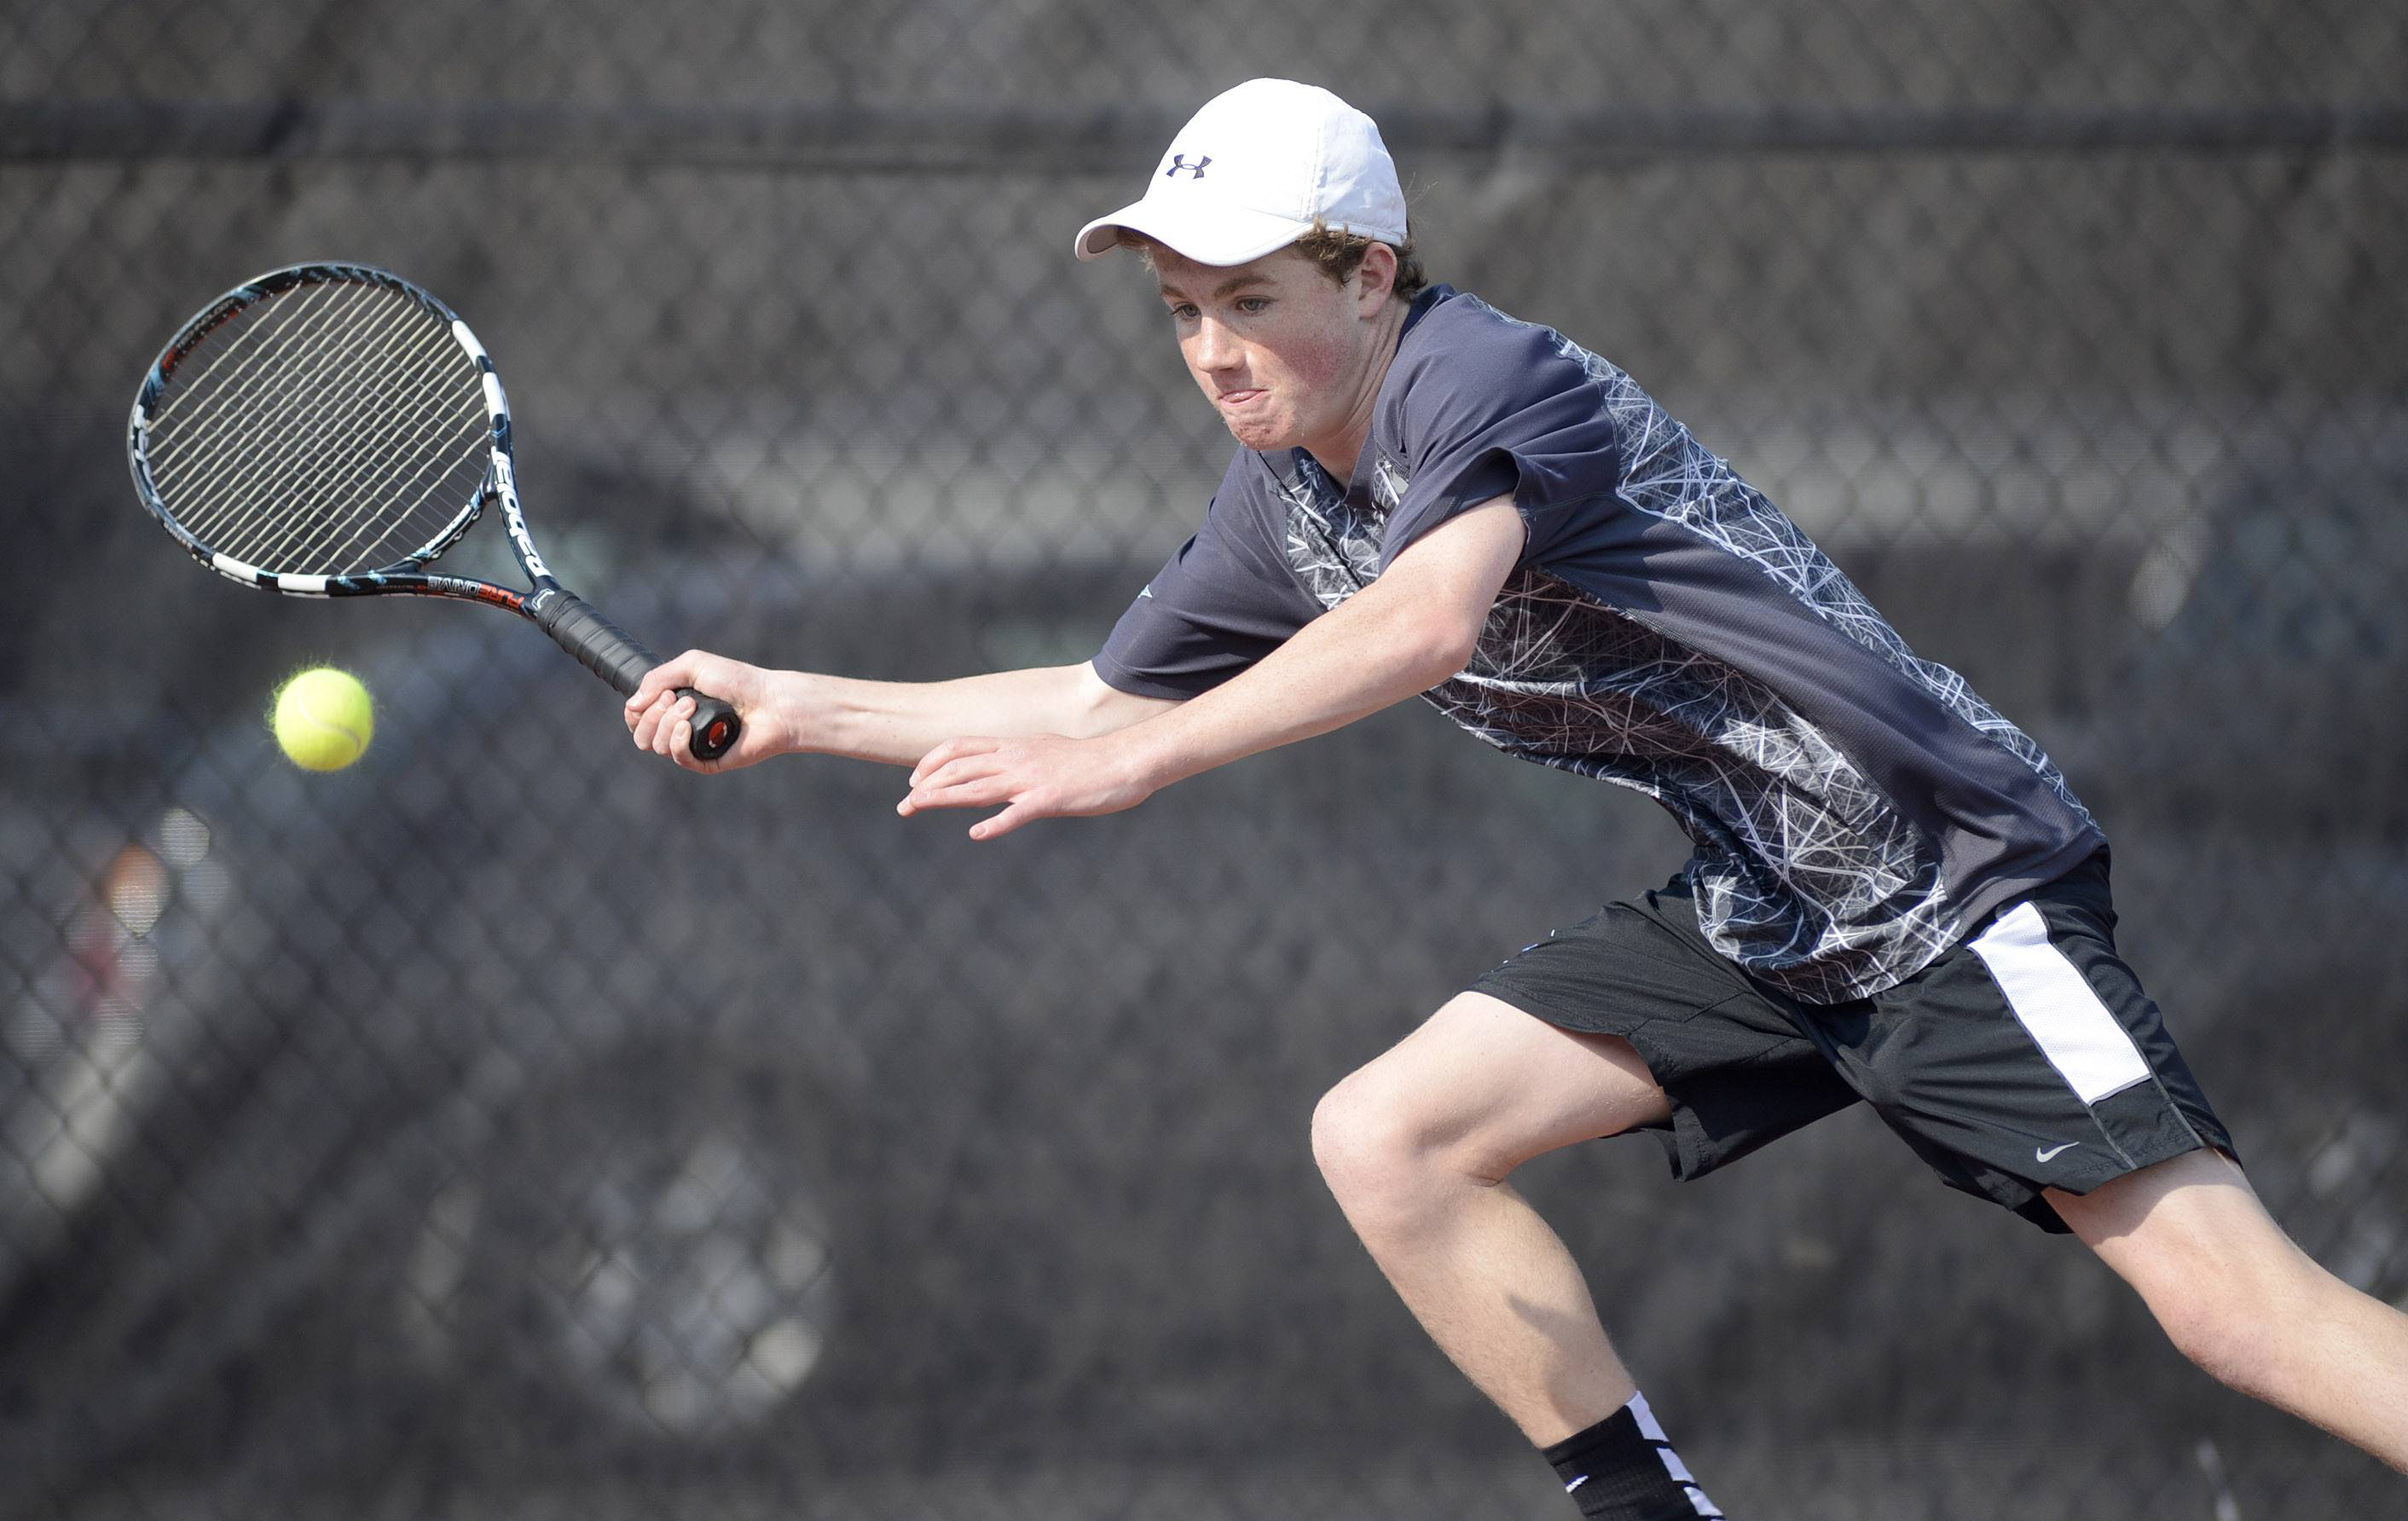 St. Charles North's Matt Ernst in first singles match vs. St. Charles North on Thursday, April 17.